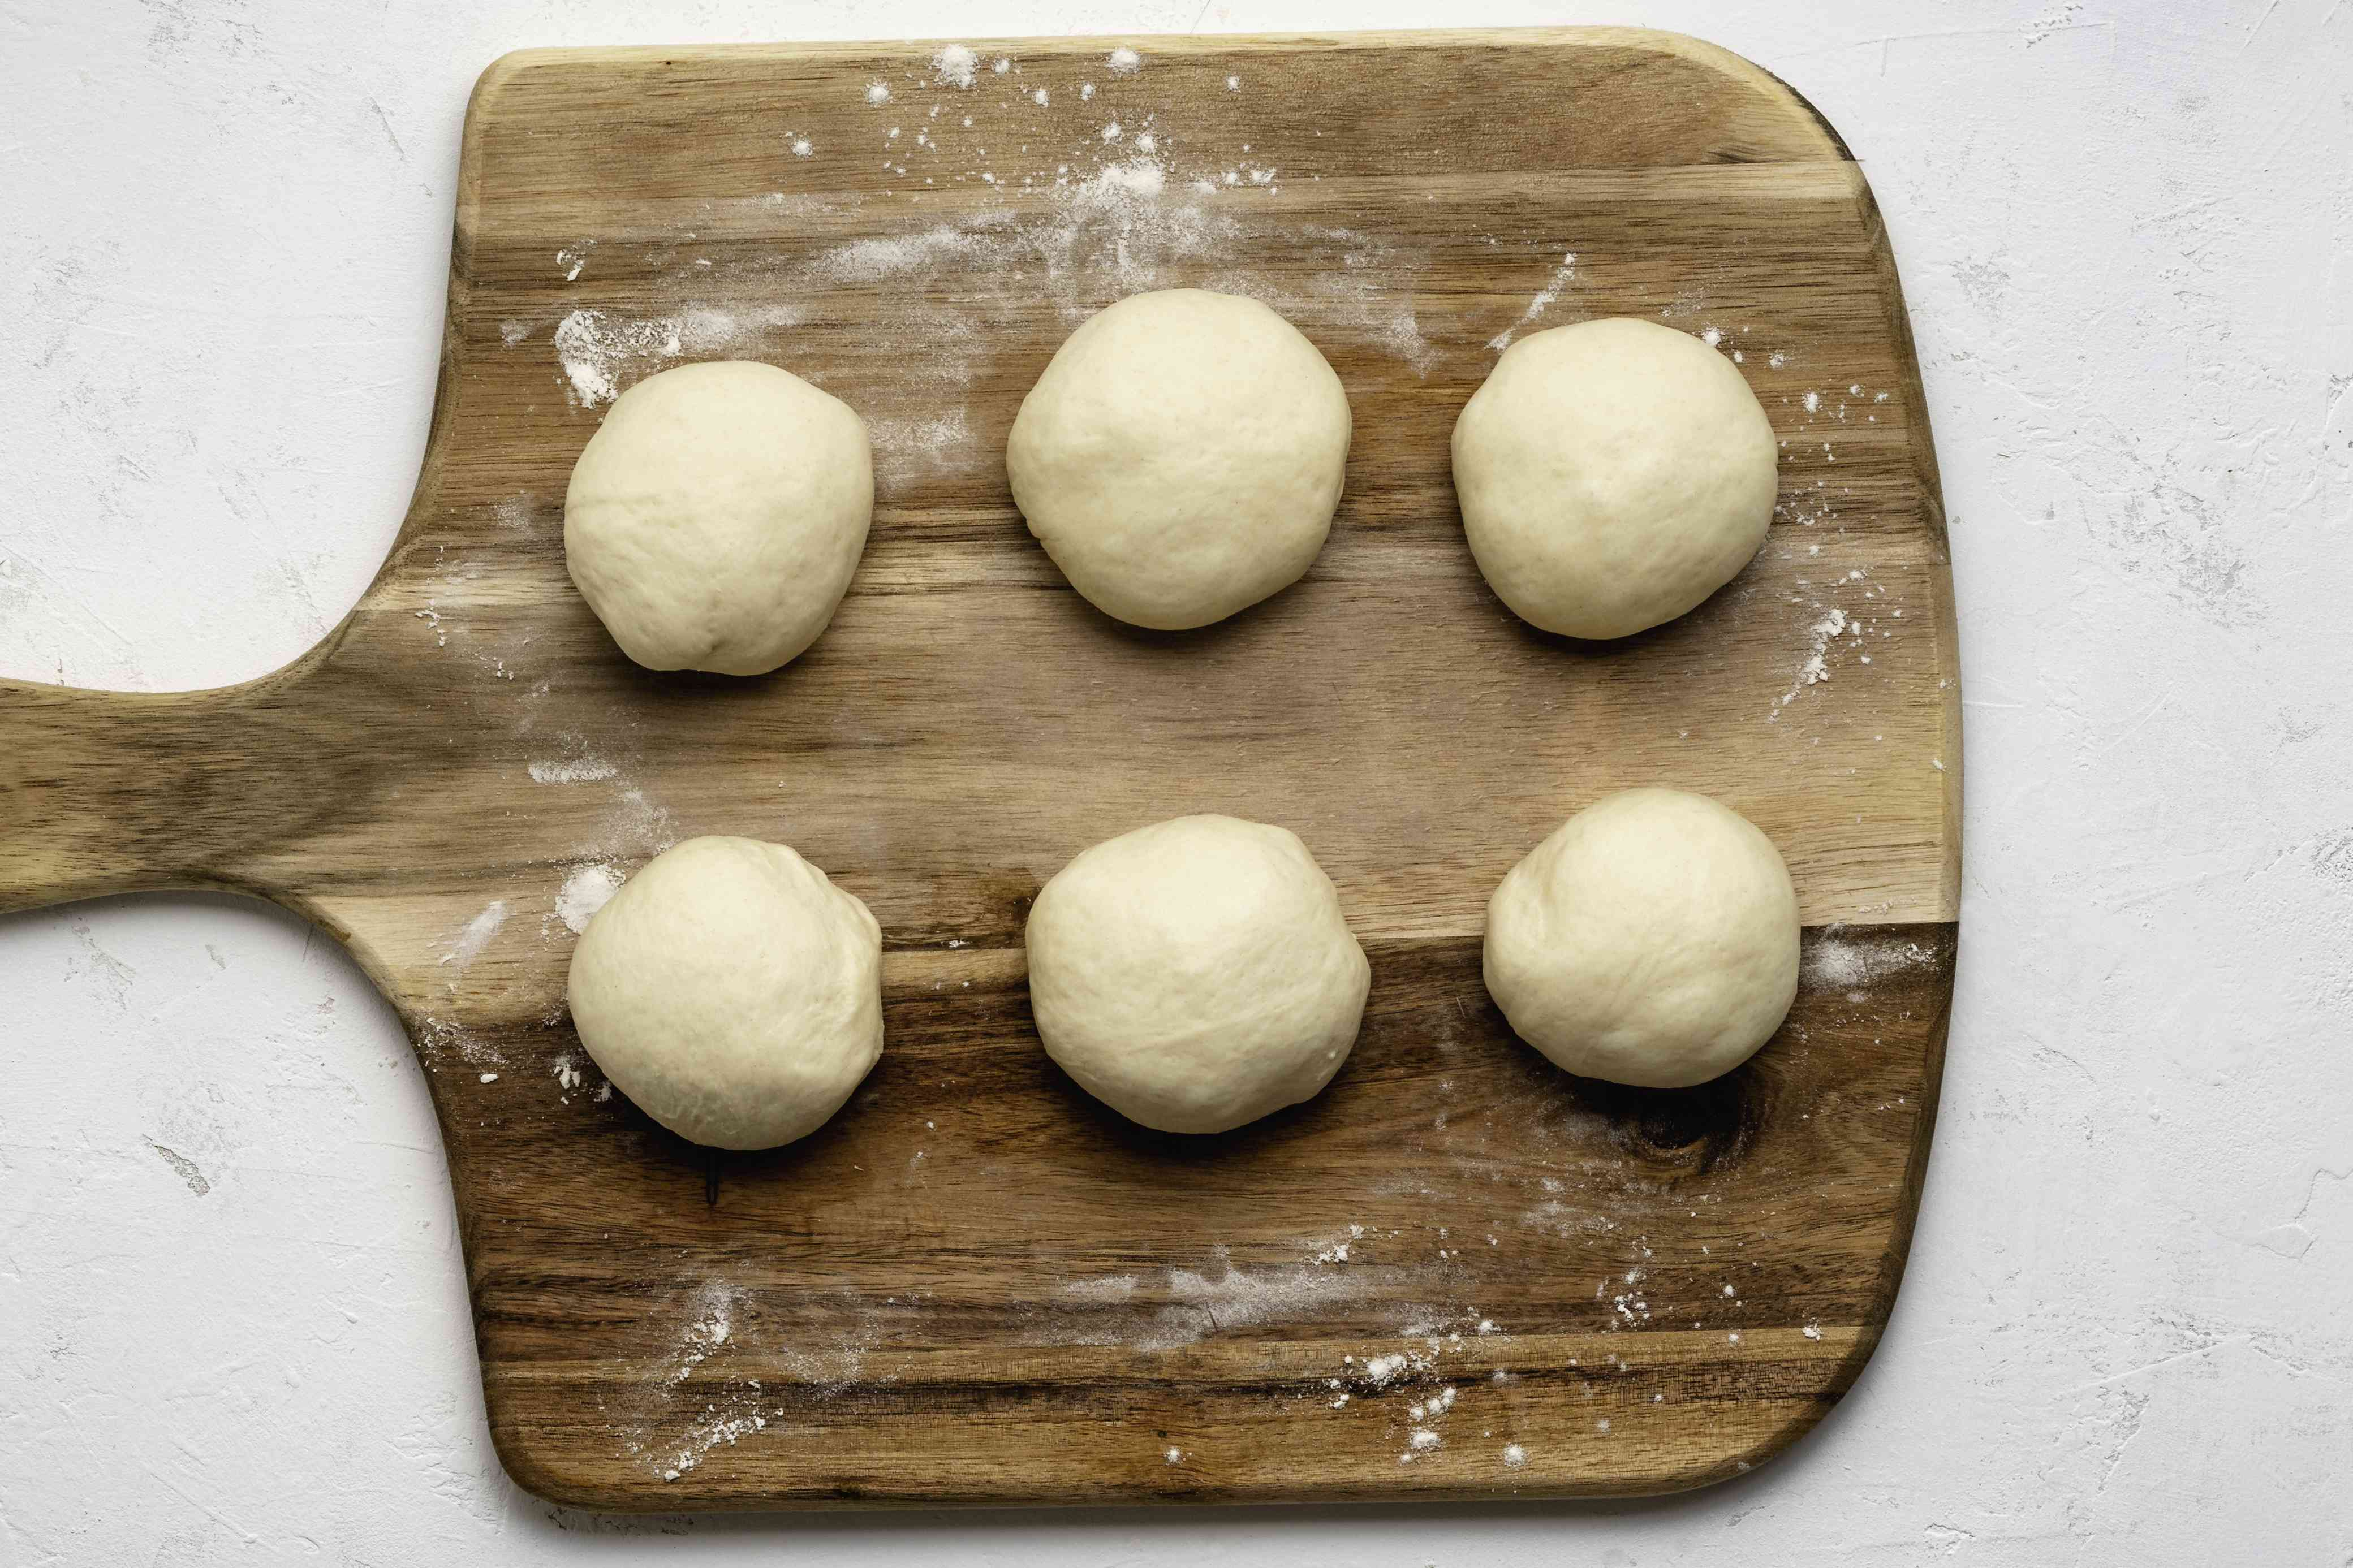 Dough divided into six equal rounds